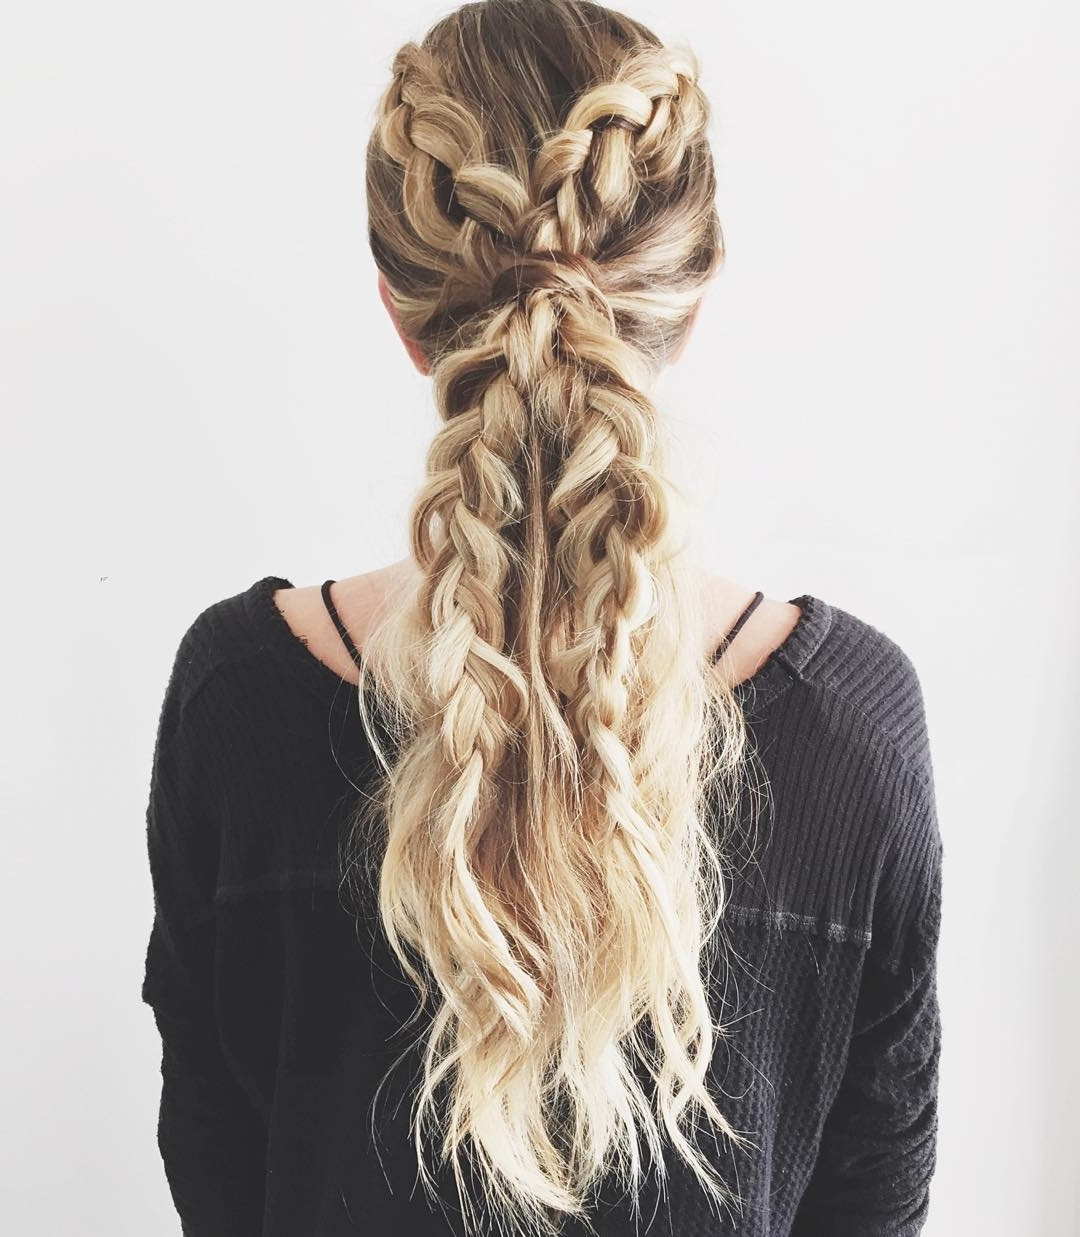 Trendy Brunette Ponytail Hairstyles With Braided Bangs With 30 Braided Ponytail Hairstyles To Slay In (View 3 of 20)